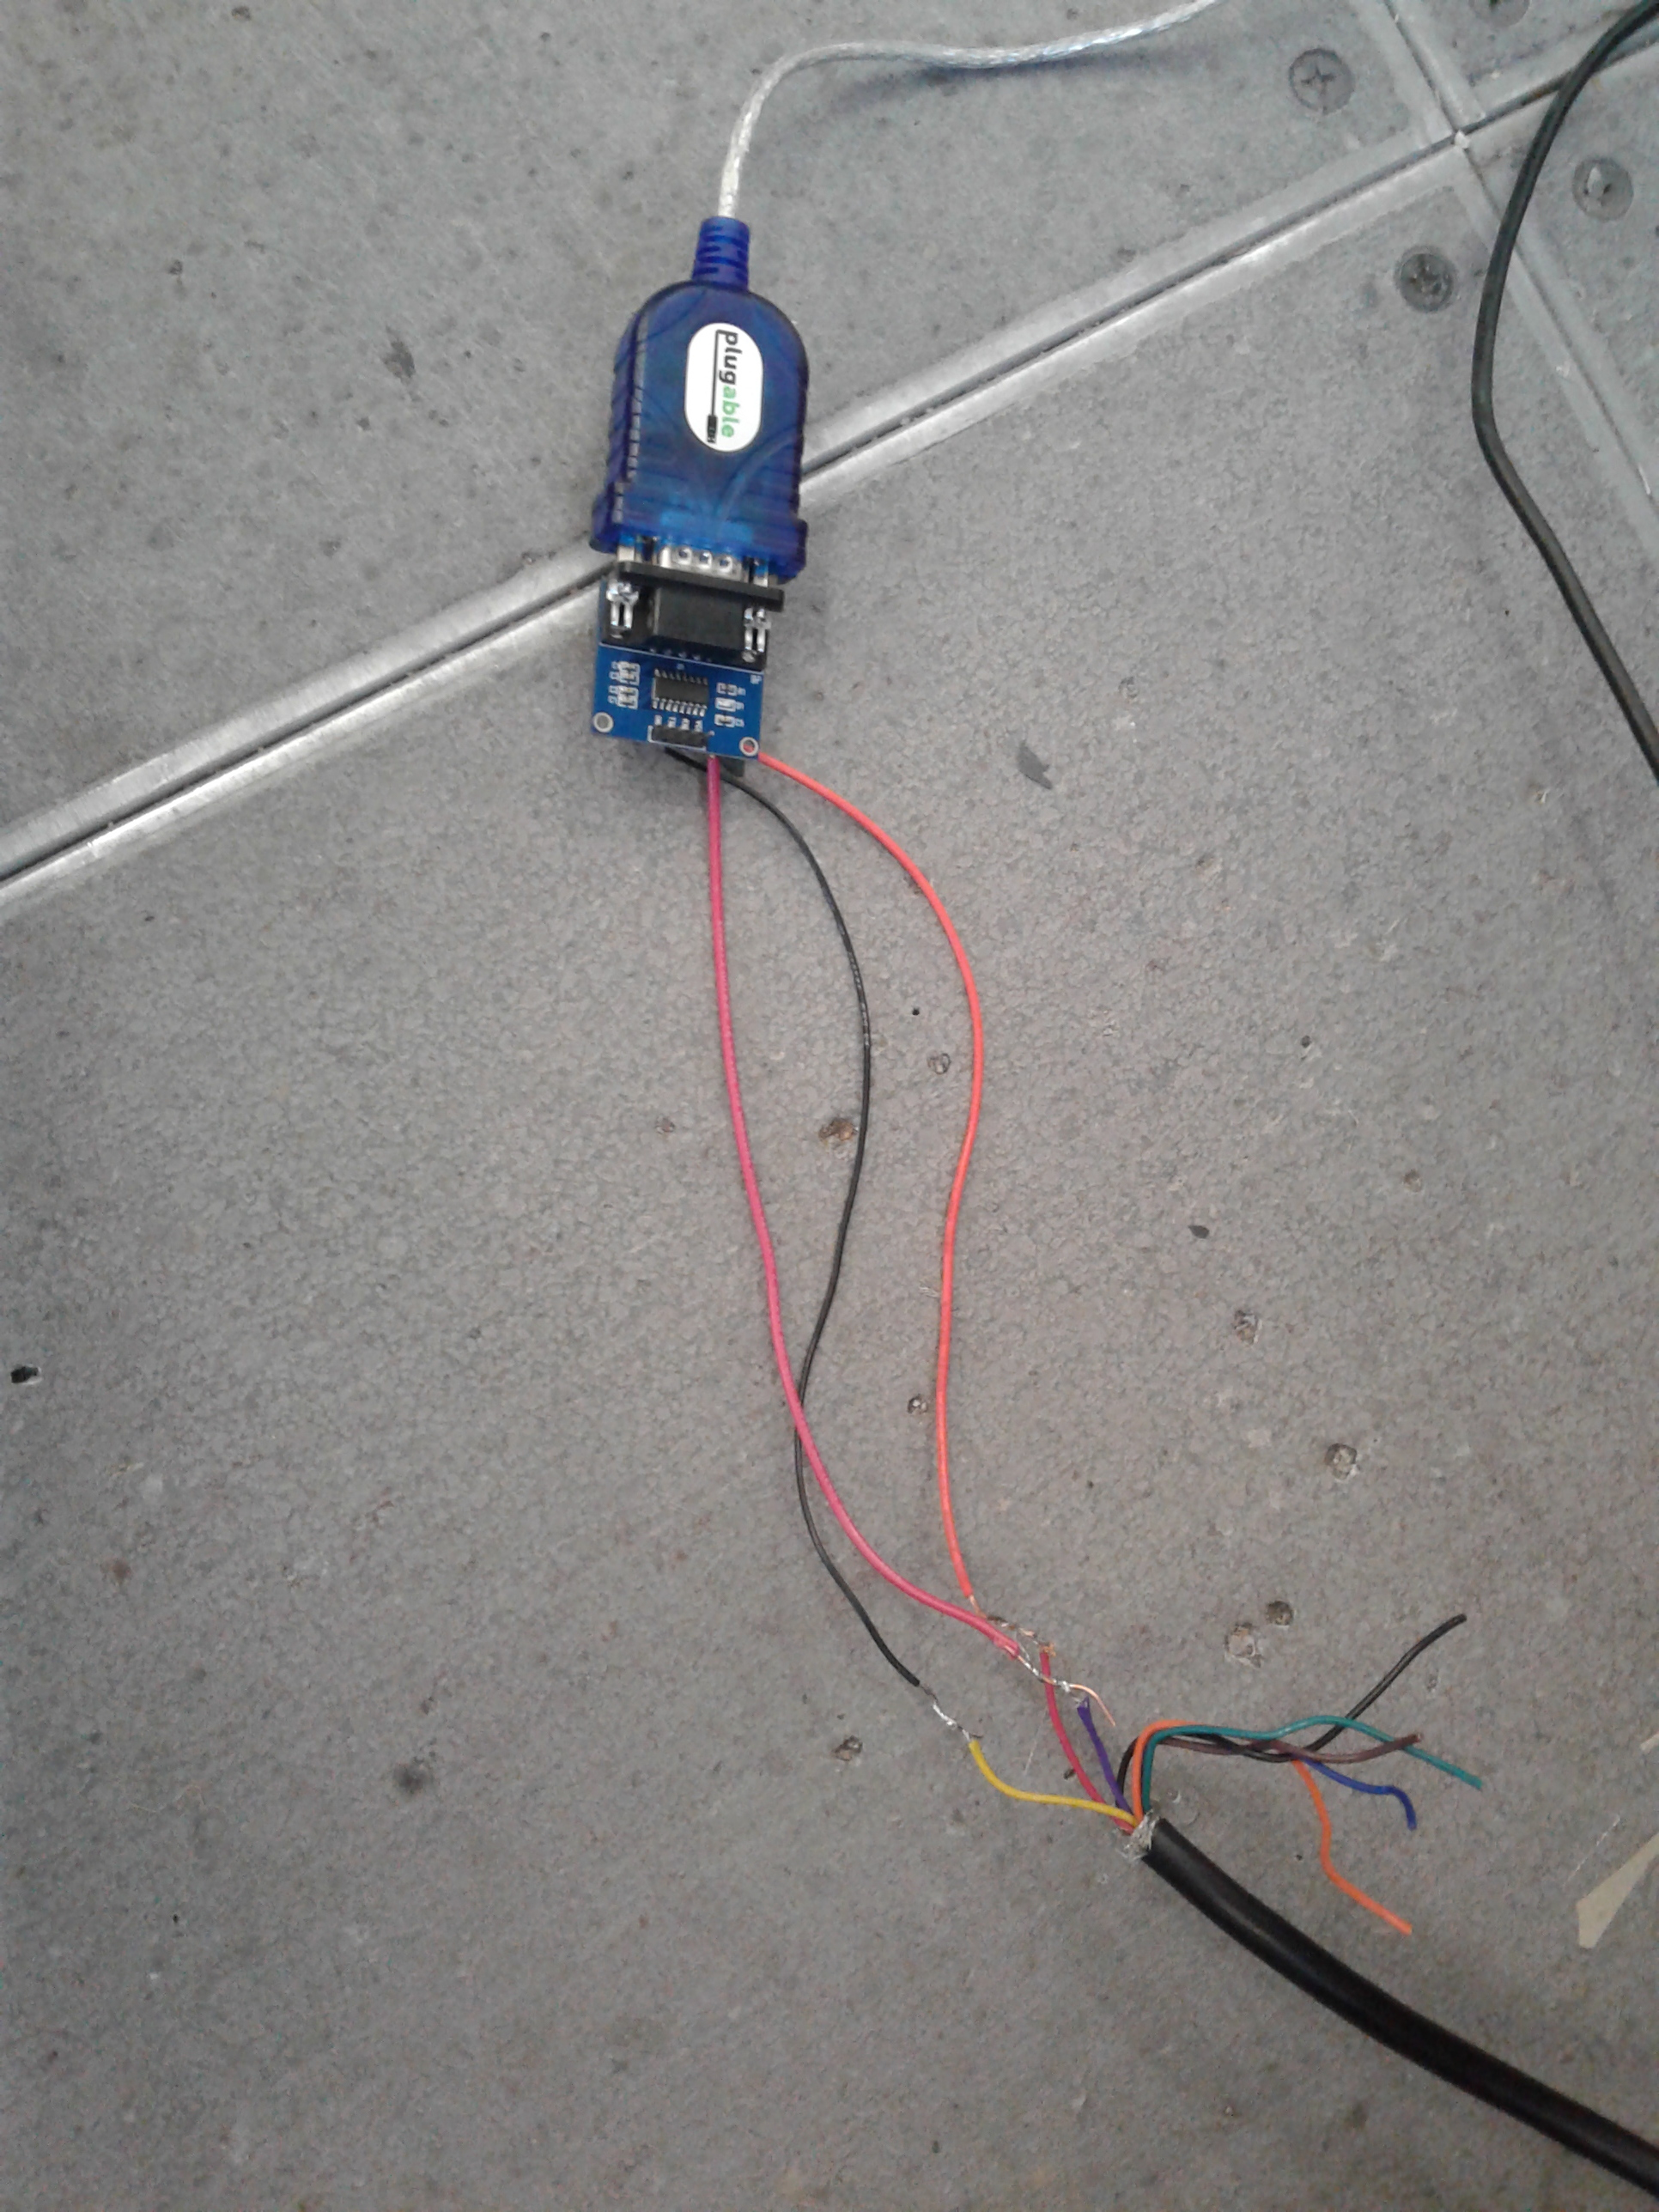 Rs232 Converter Only Works When I Cross The Wires - Hardware - Particle - Usb Rs232 Cable Wiring Diagram